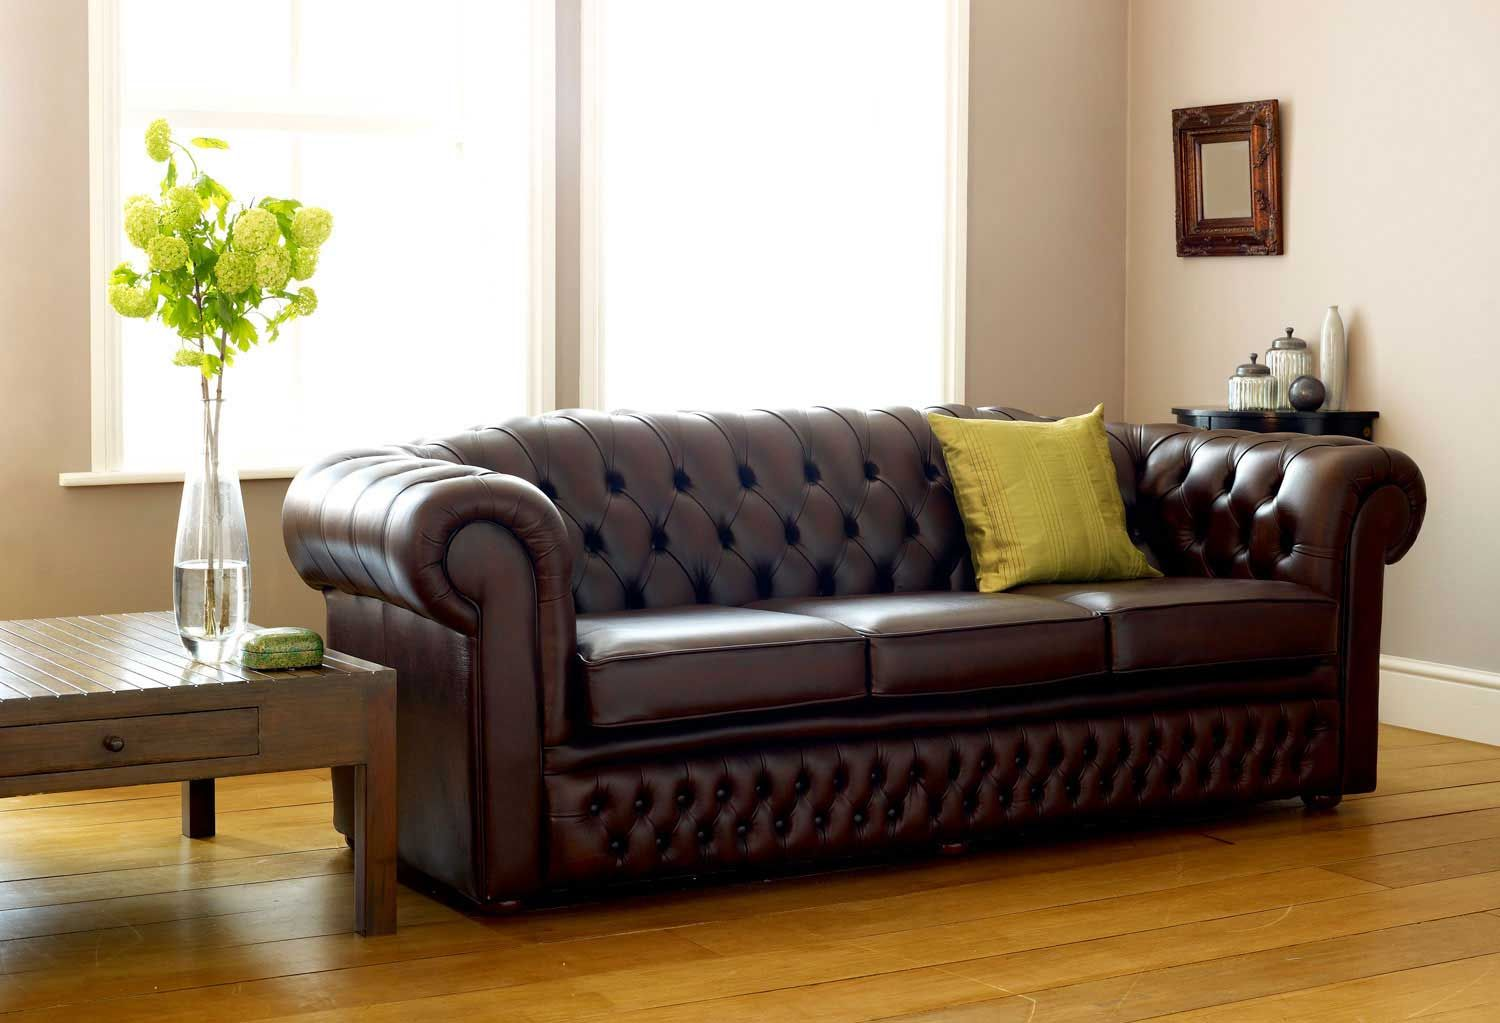 Chesterfield Sofa Camden Chesterfield Sofas Von Wilmowsky